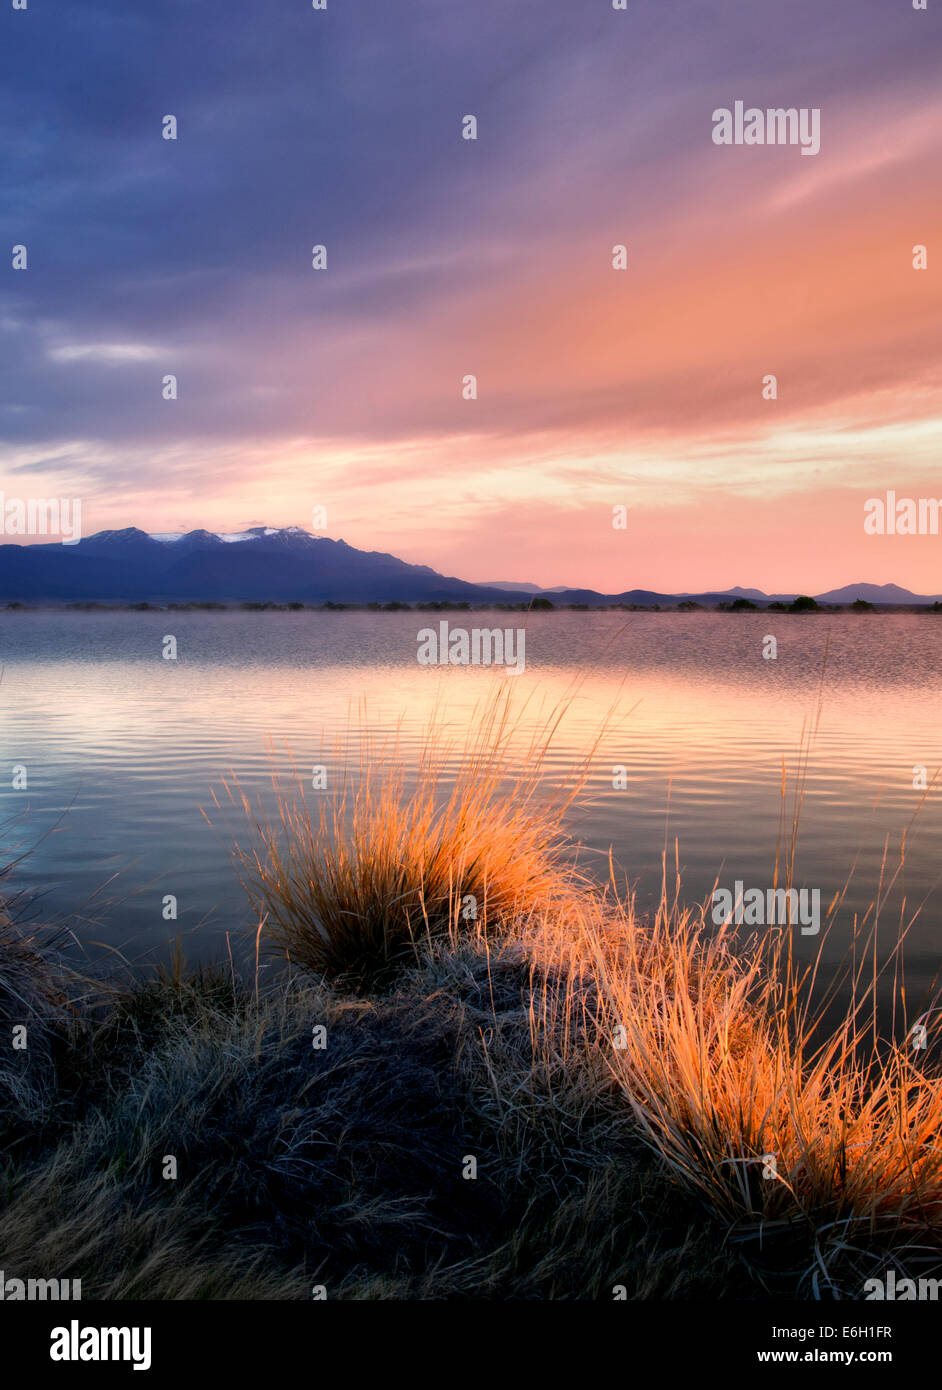 Sunrise on borax pond with Steens mountain.  Borax Lake Preserve, Oregon - Stock Image